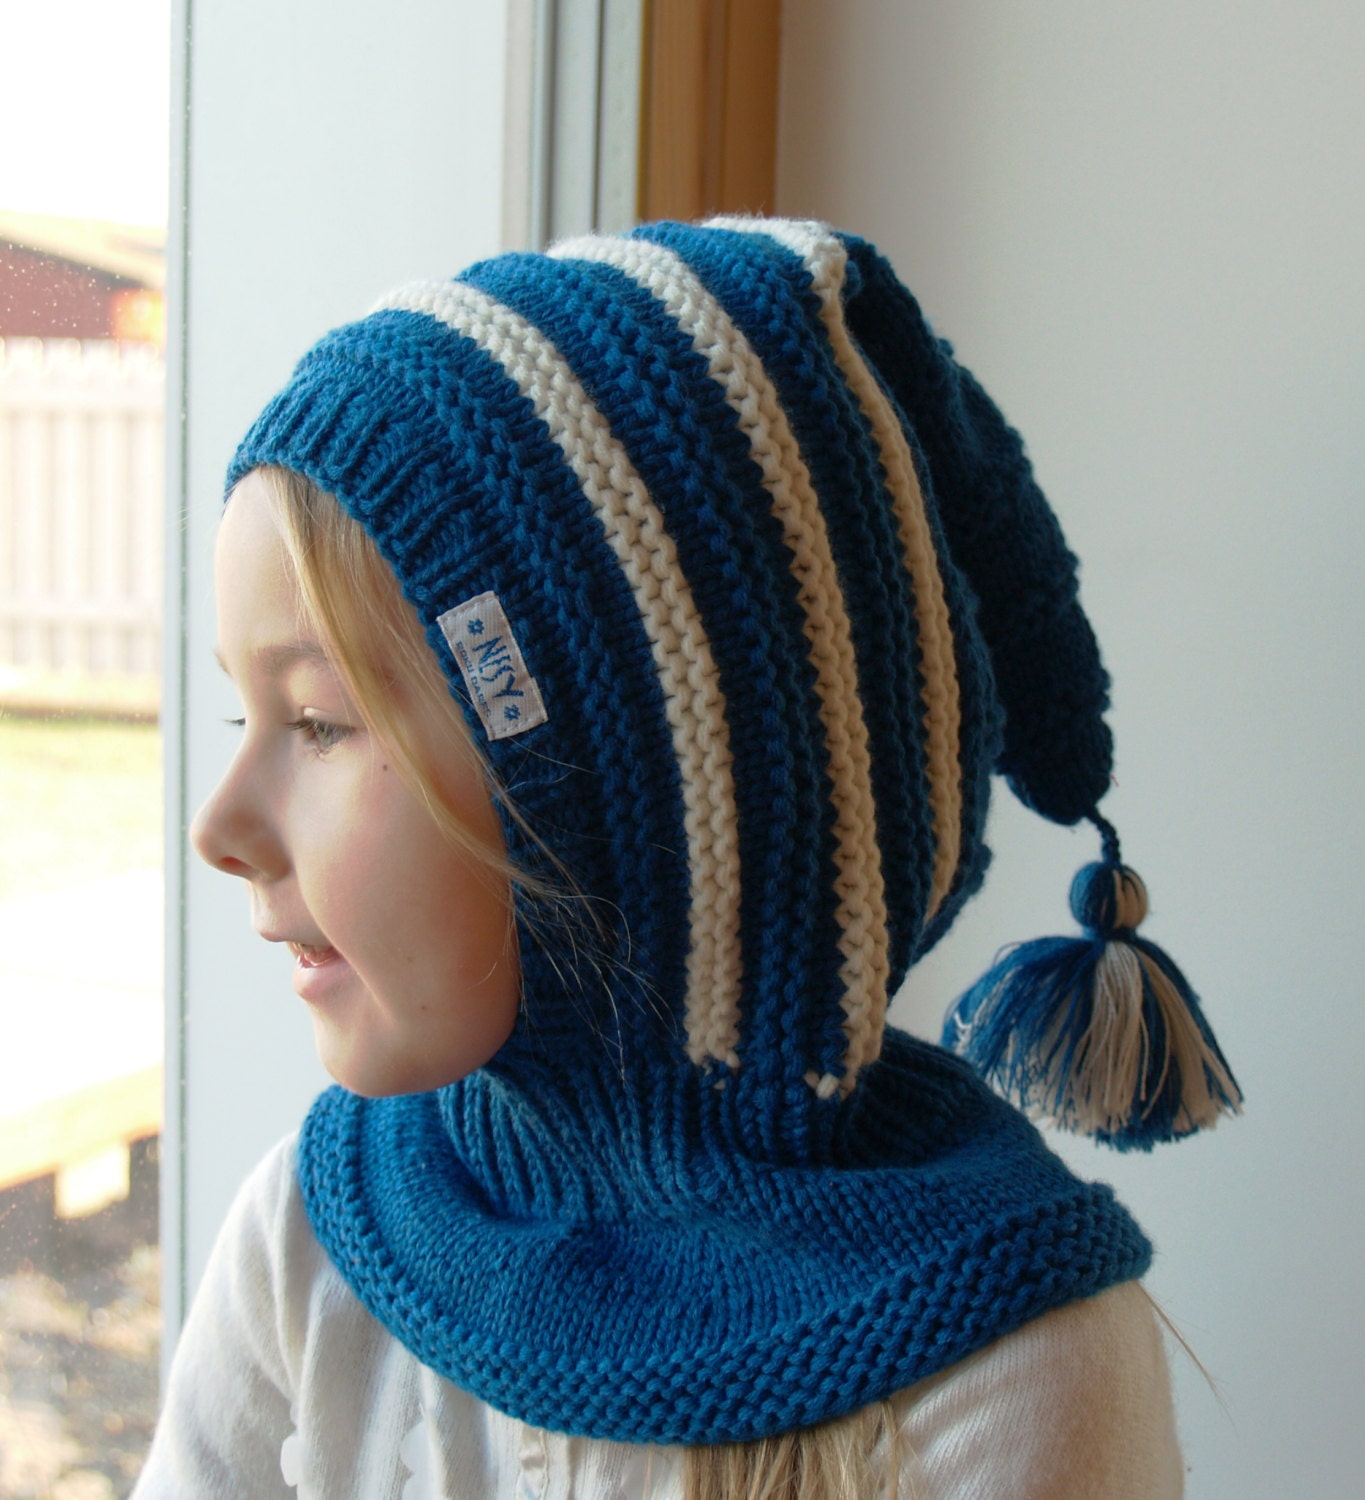 Knitting Pattern Balaclava Child : Knit Balaclava for Baby, Toddler, Child Hoodie Hat with Tail and PomPom, Wool...